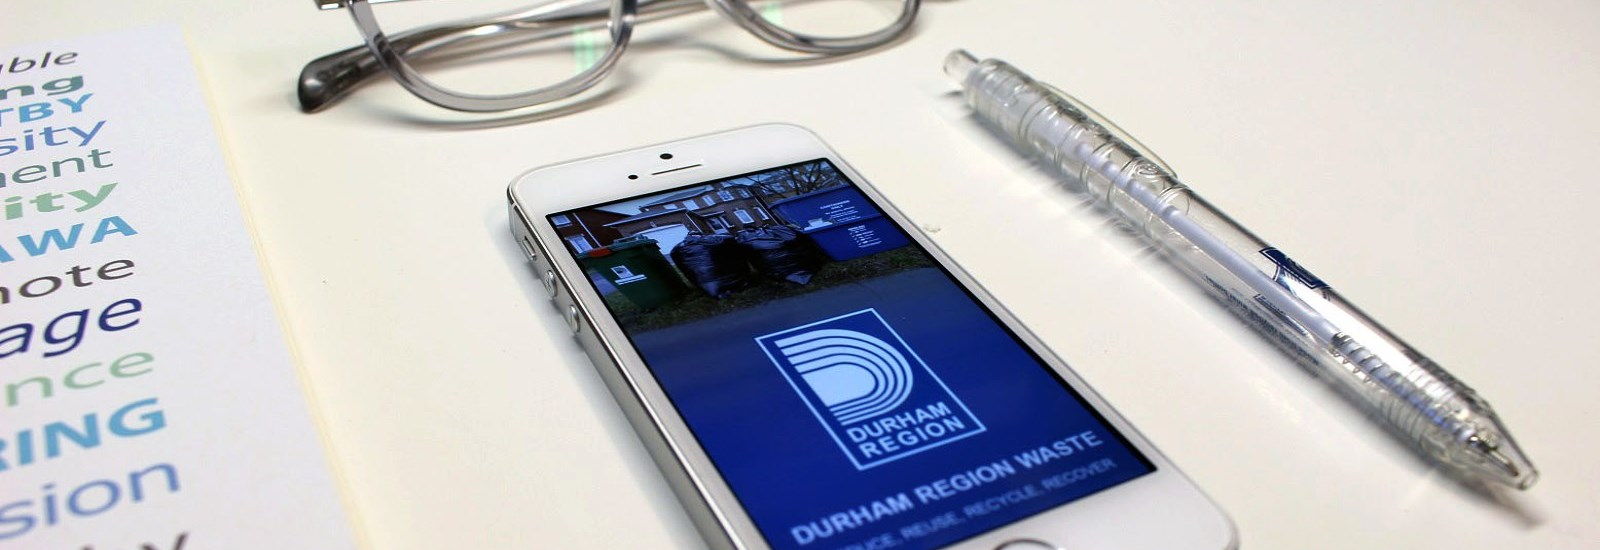 Durham Waste App on mobile device